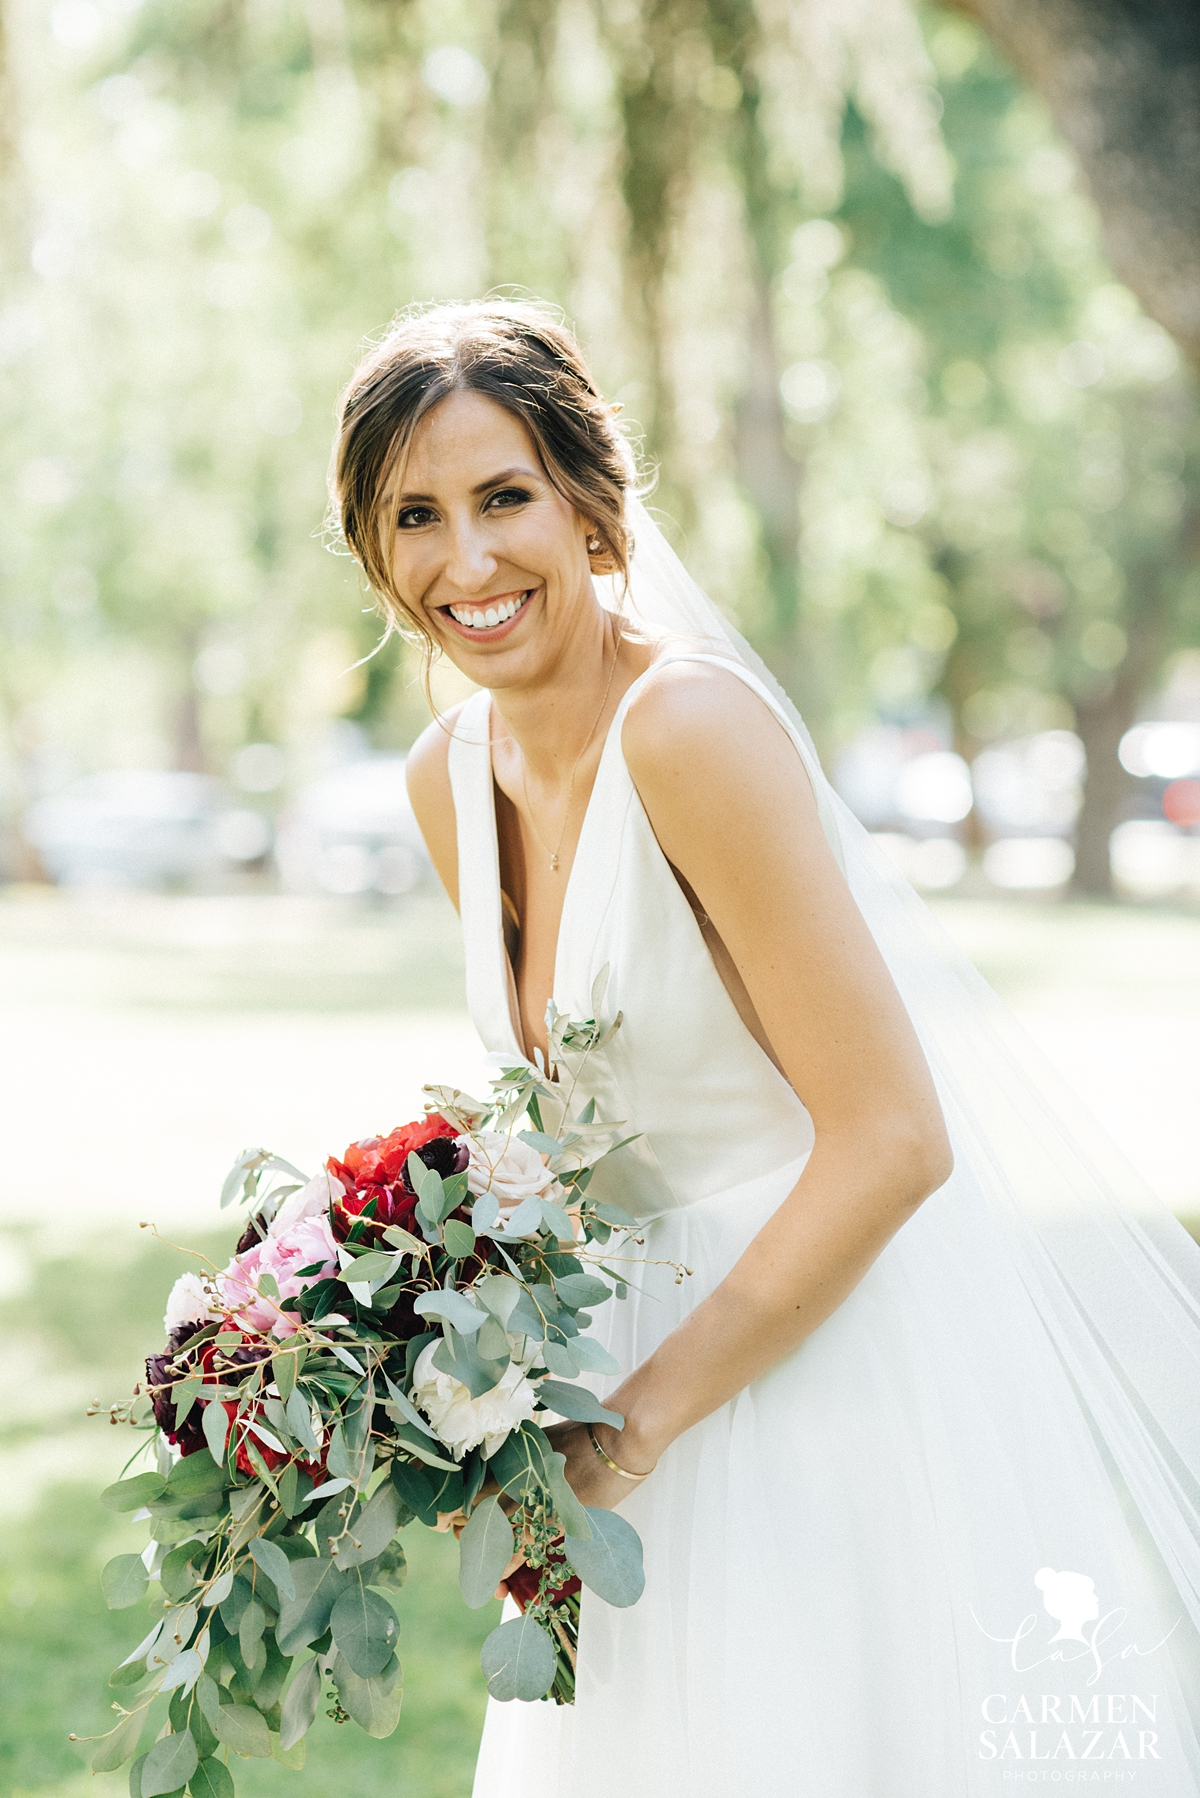 Laughing bride in Sarah Seven wedding gown with bouquet by Sacramento Wedding Photographer Carmen Salazar